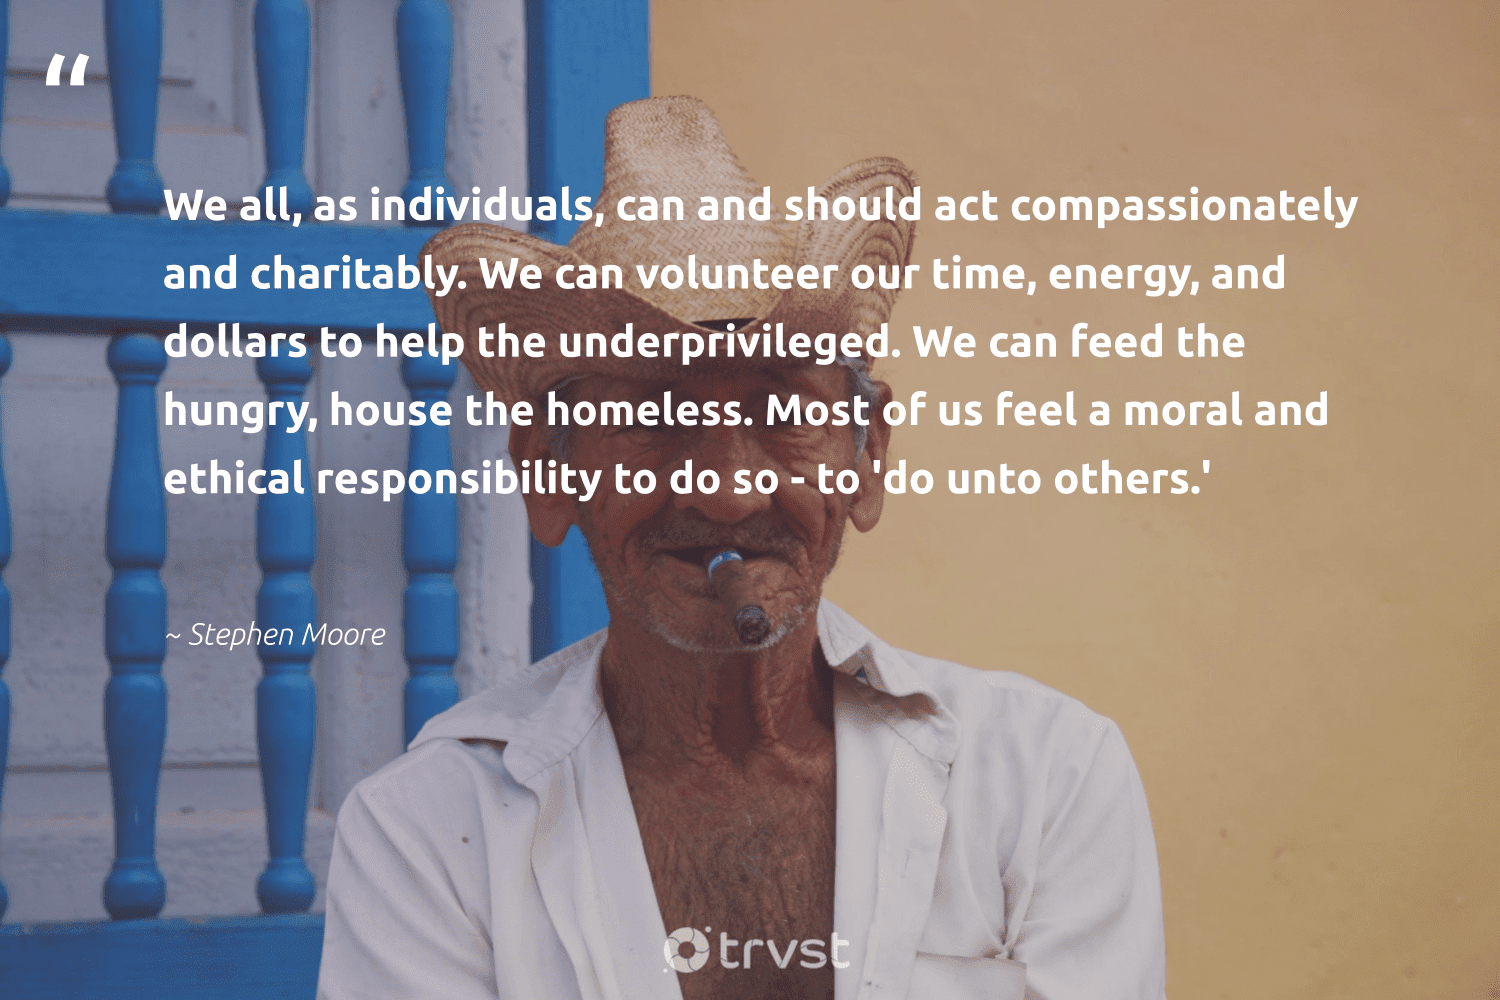 """""""We all, as individuals, can and should act compassionately and charitably. We can volunteer our time, energy, and dollars to help the underprivileged. We can feed the hungry, house the homeless. Most of us feel a moral and ethical responsibility to do so - to 'do unto others.'""""  - Stephen Moore #trvst #quotes #homelessness #ethical #energy #volunteer #homeless #hungry #inclusion #equalrights #dotherightthing #makeadifference"""